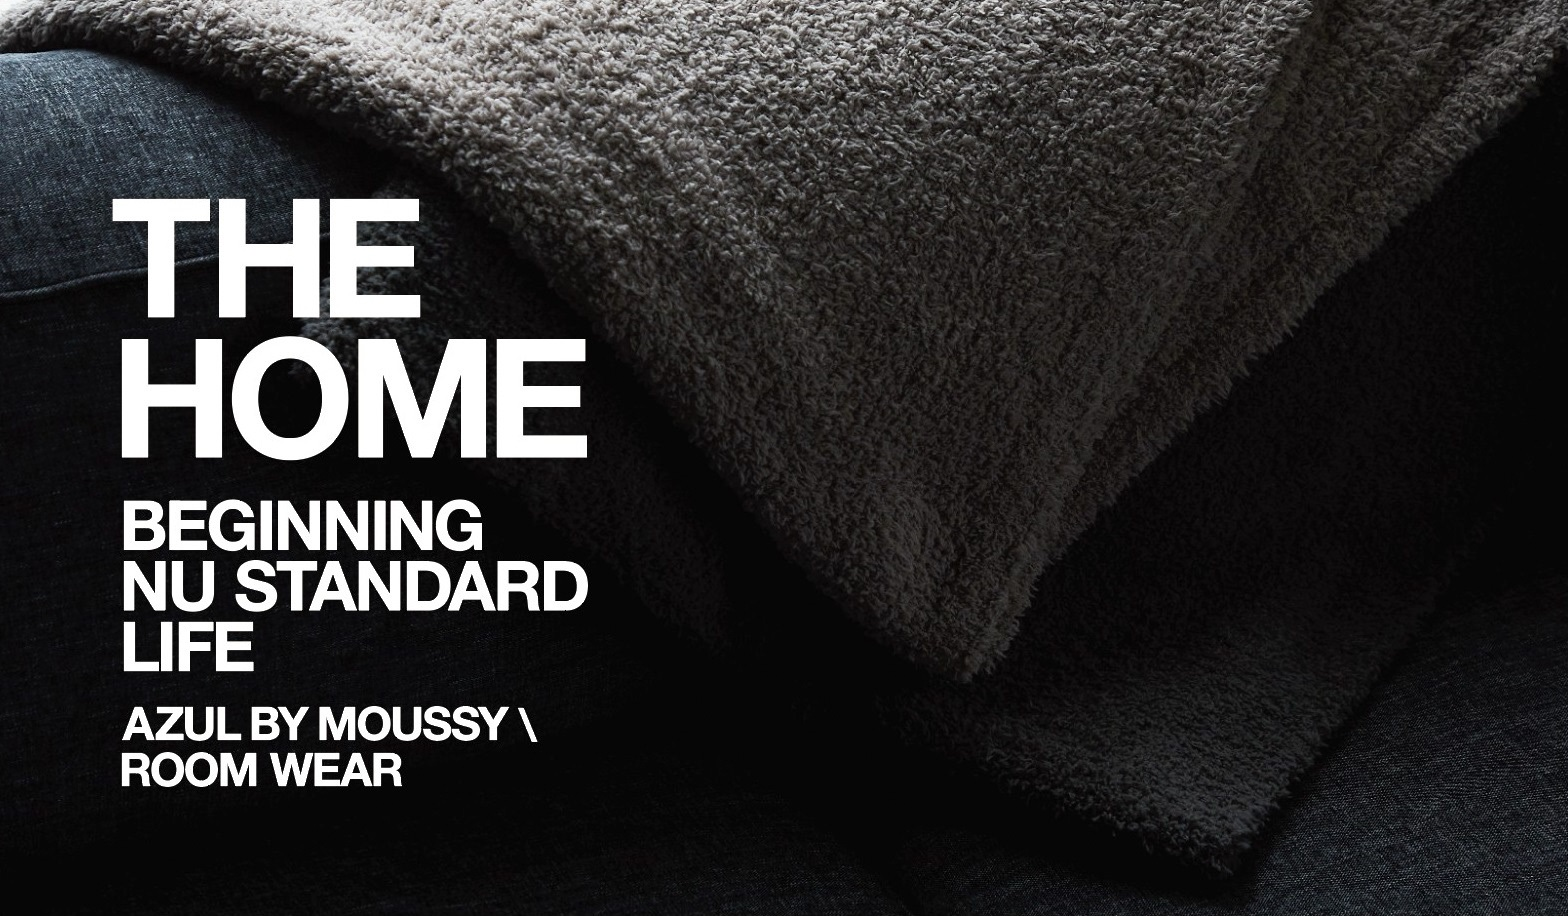 AZUL BY MOUSSYから、クールでスタイリッシュに過ごせる新ライン「THE HOME」